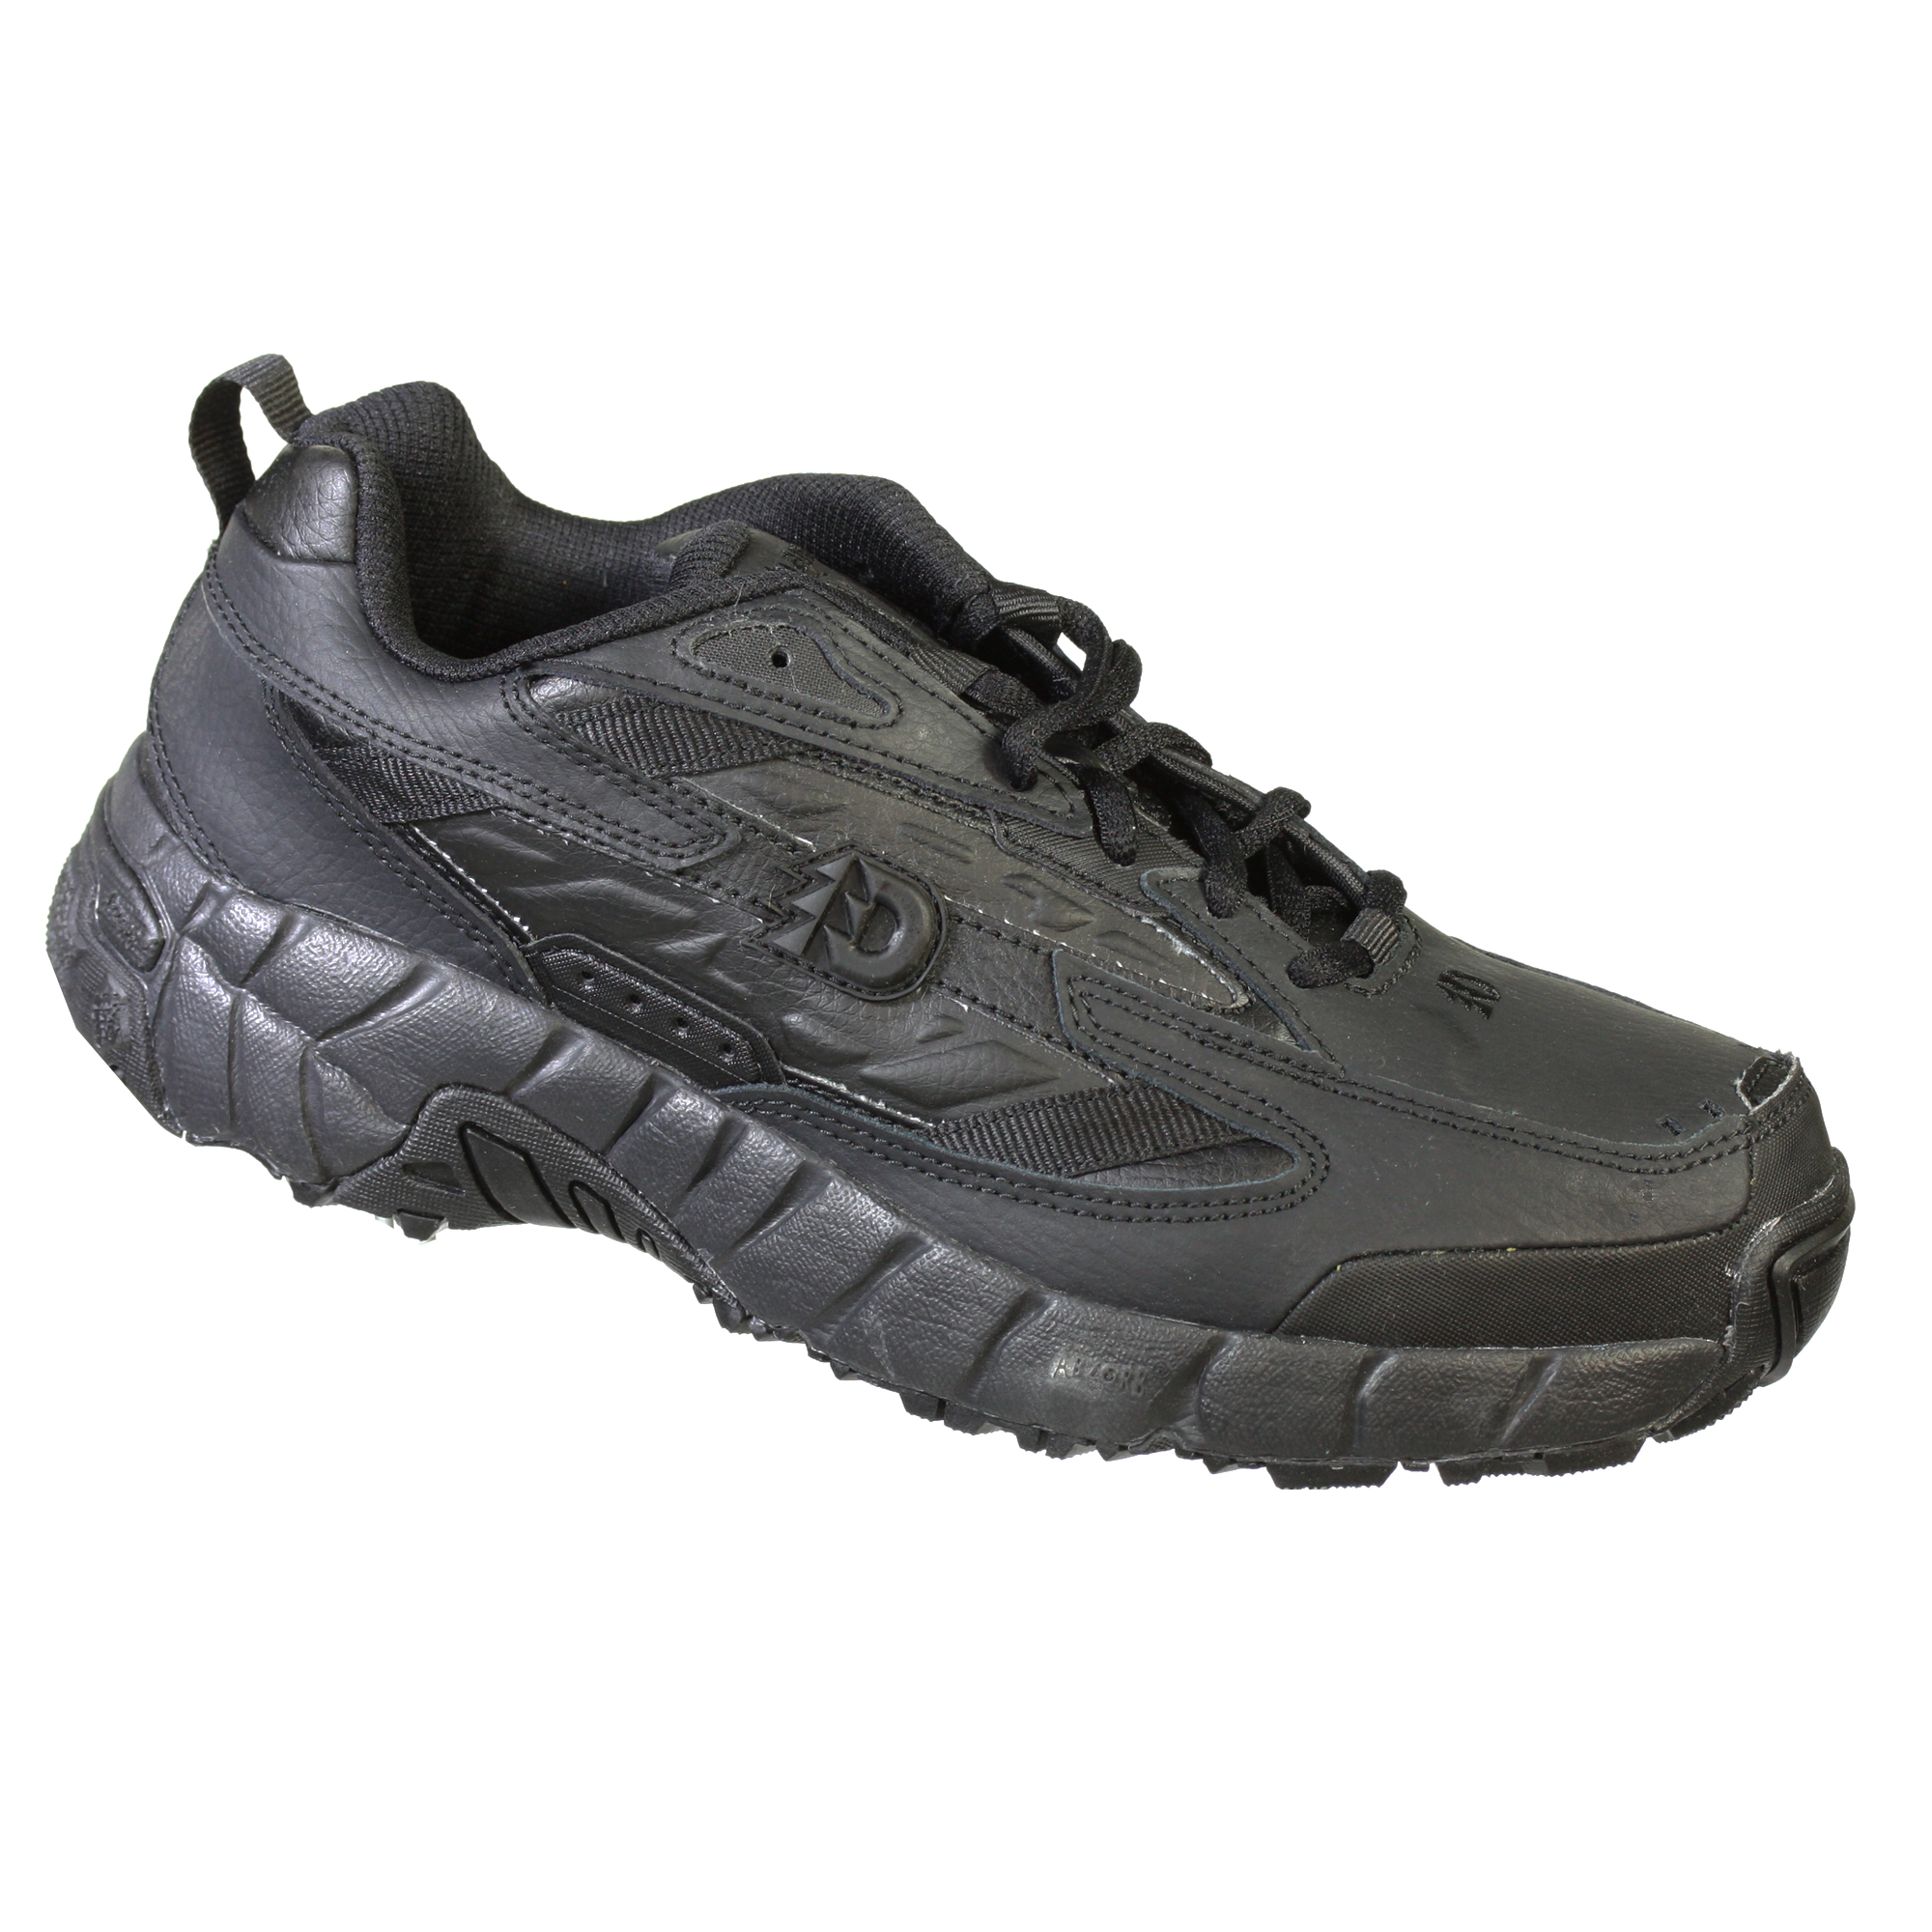 Dunham by New Balance DS664 Mens Steel Toe SDI Athletic Shoes Black 7.5 EE by Dunham